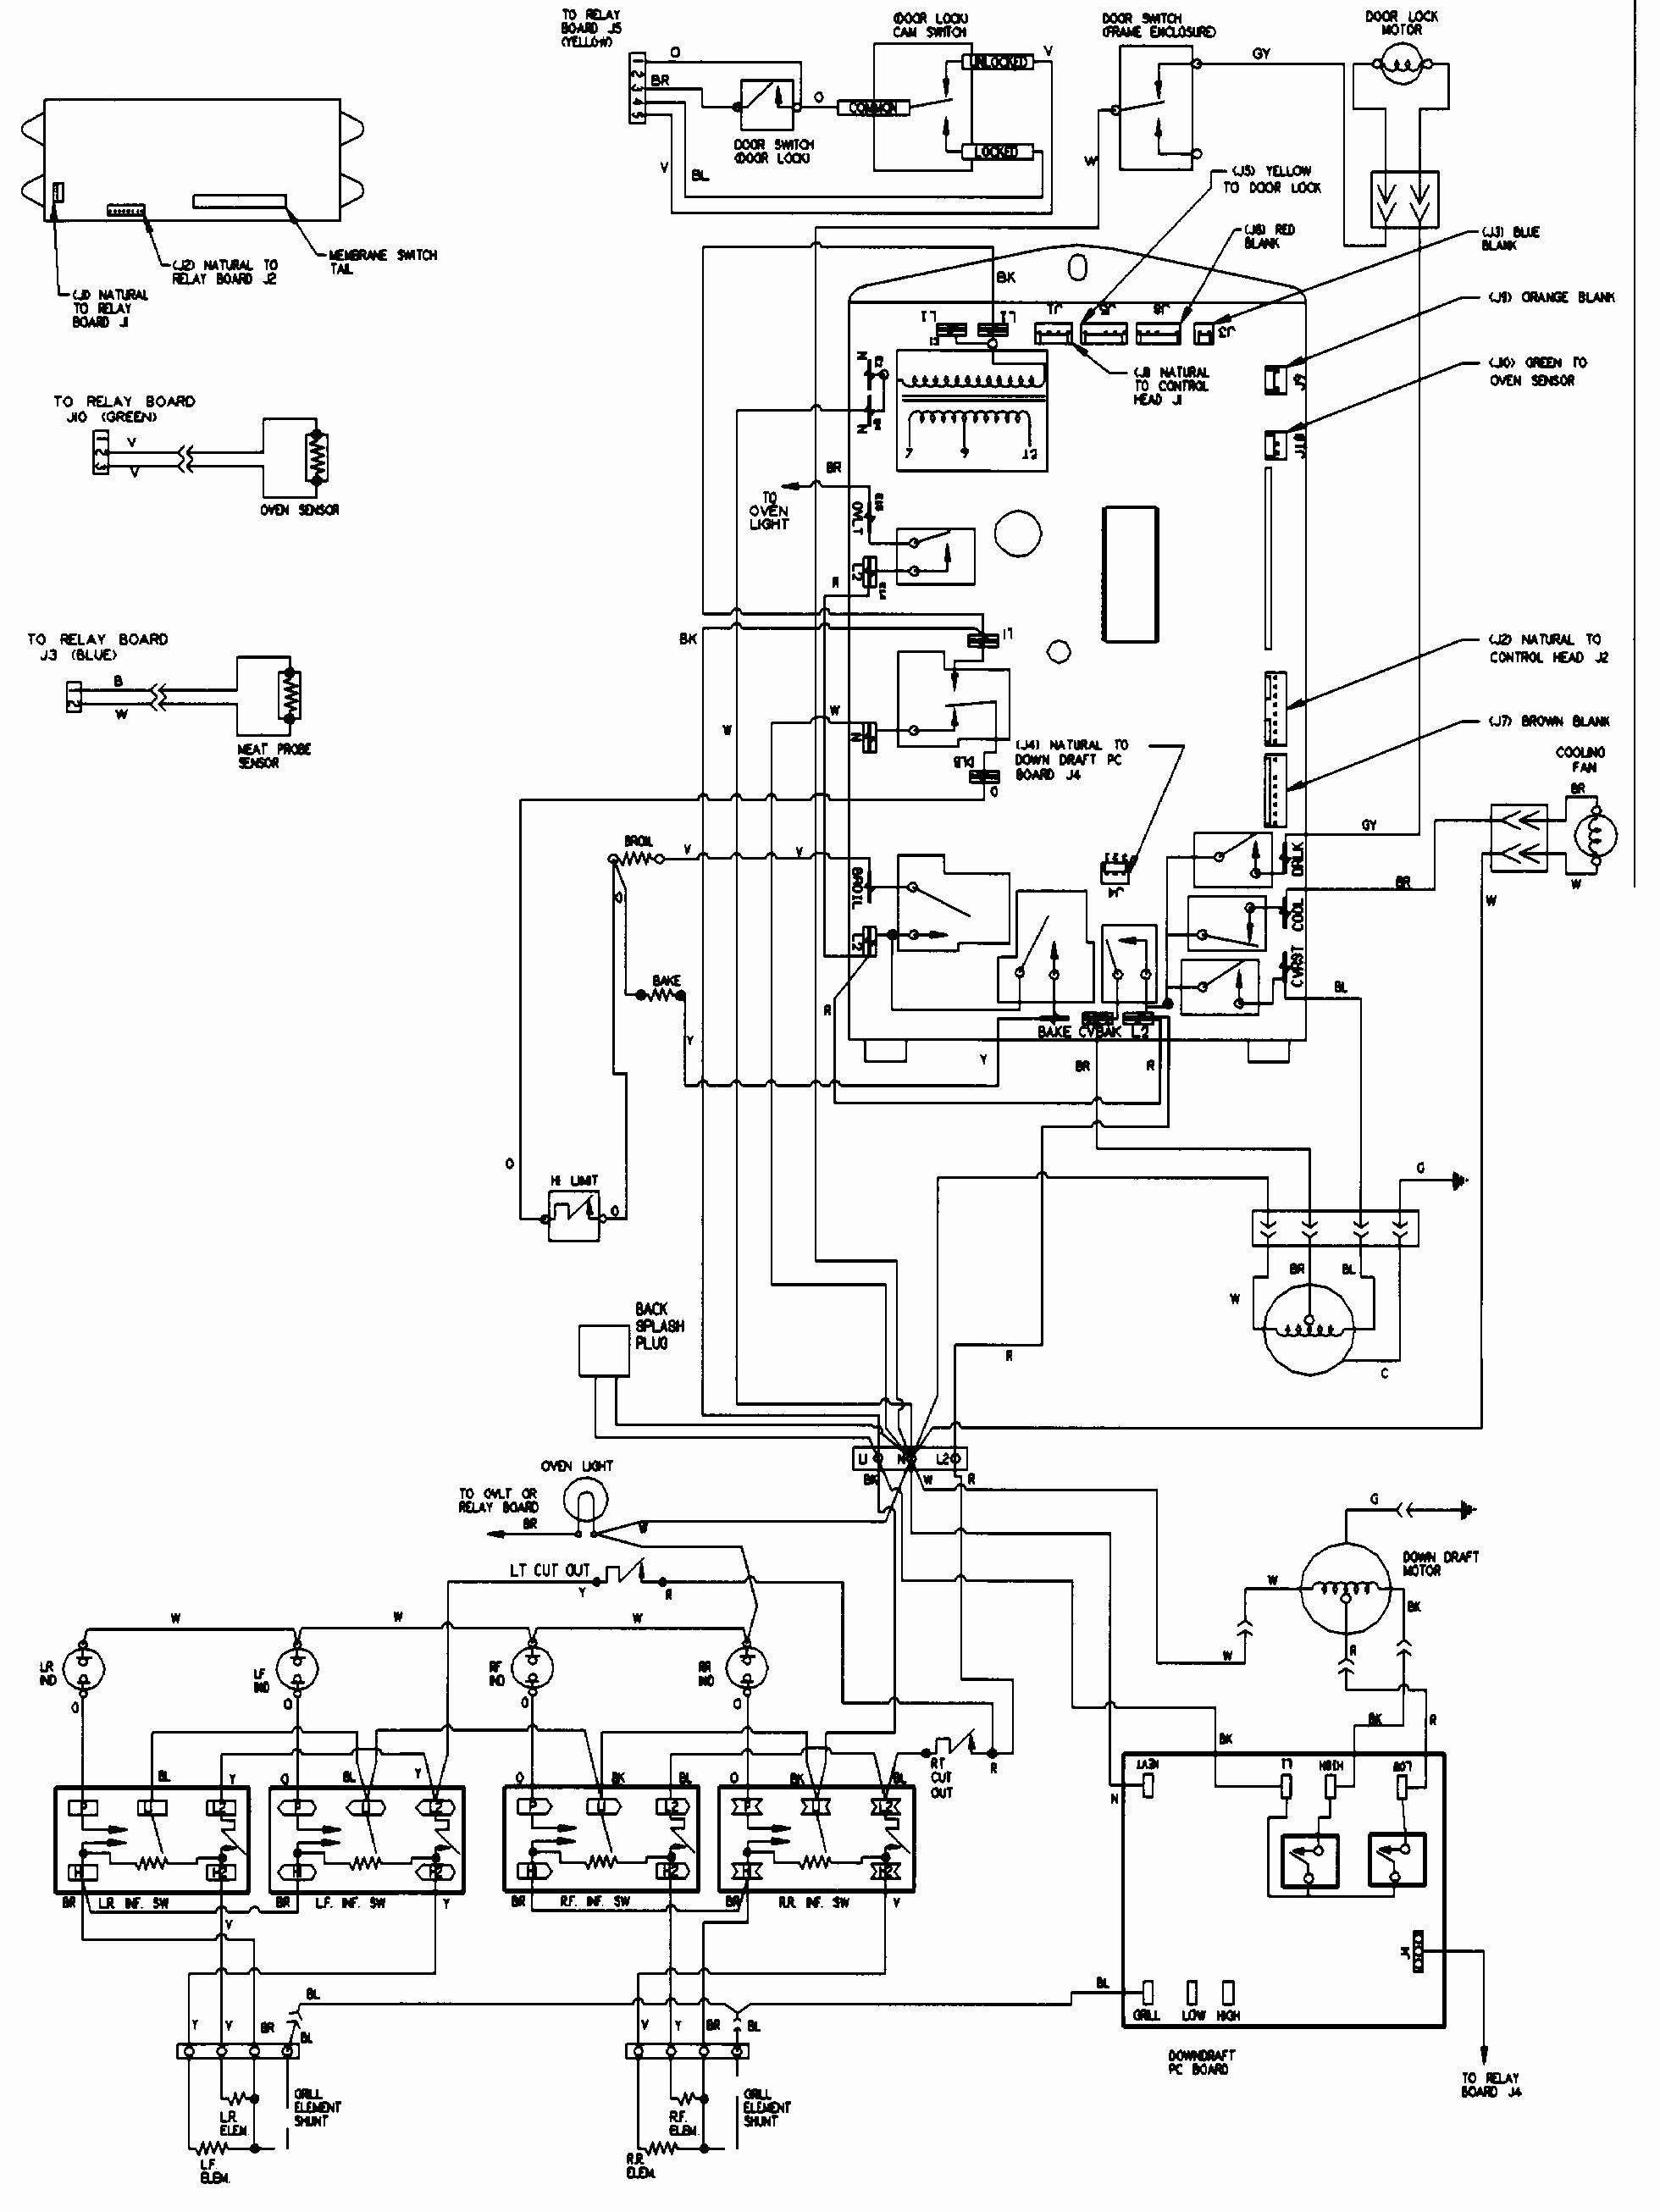 Wiring Diagram Outlets Beautiful Wiring Diagram Outlets Splendid Line Wiring Diagram Help Signal Circuit Diagram Electrical Diagram Electrical Wiring Diagram